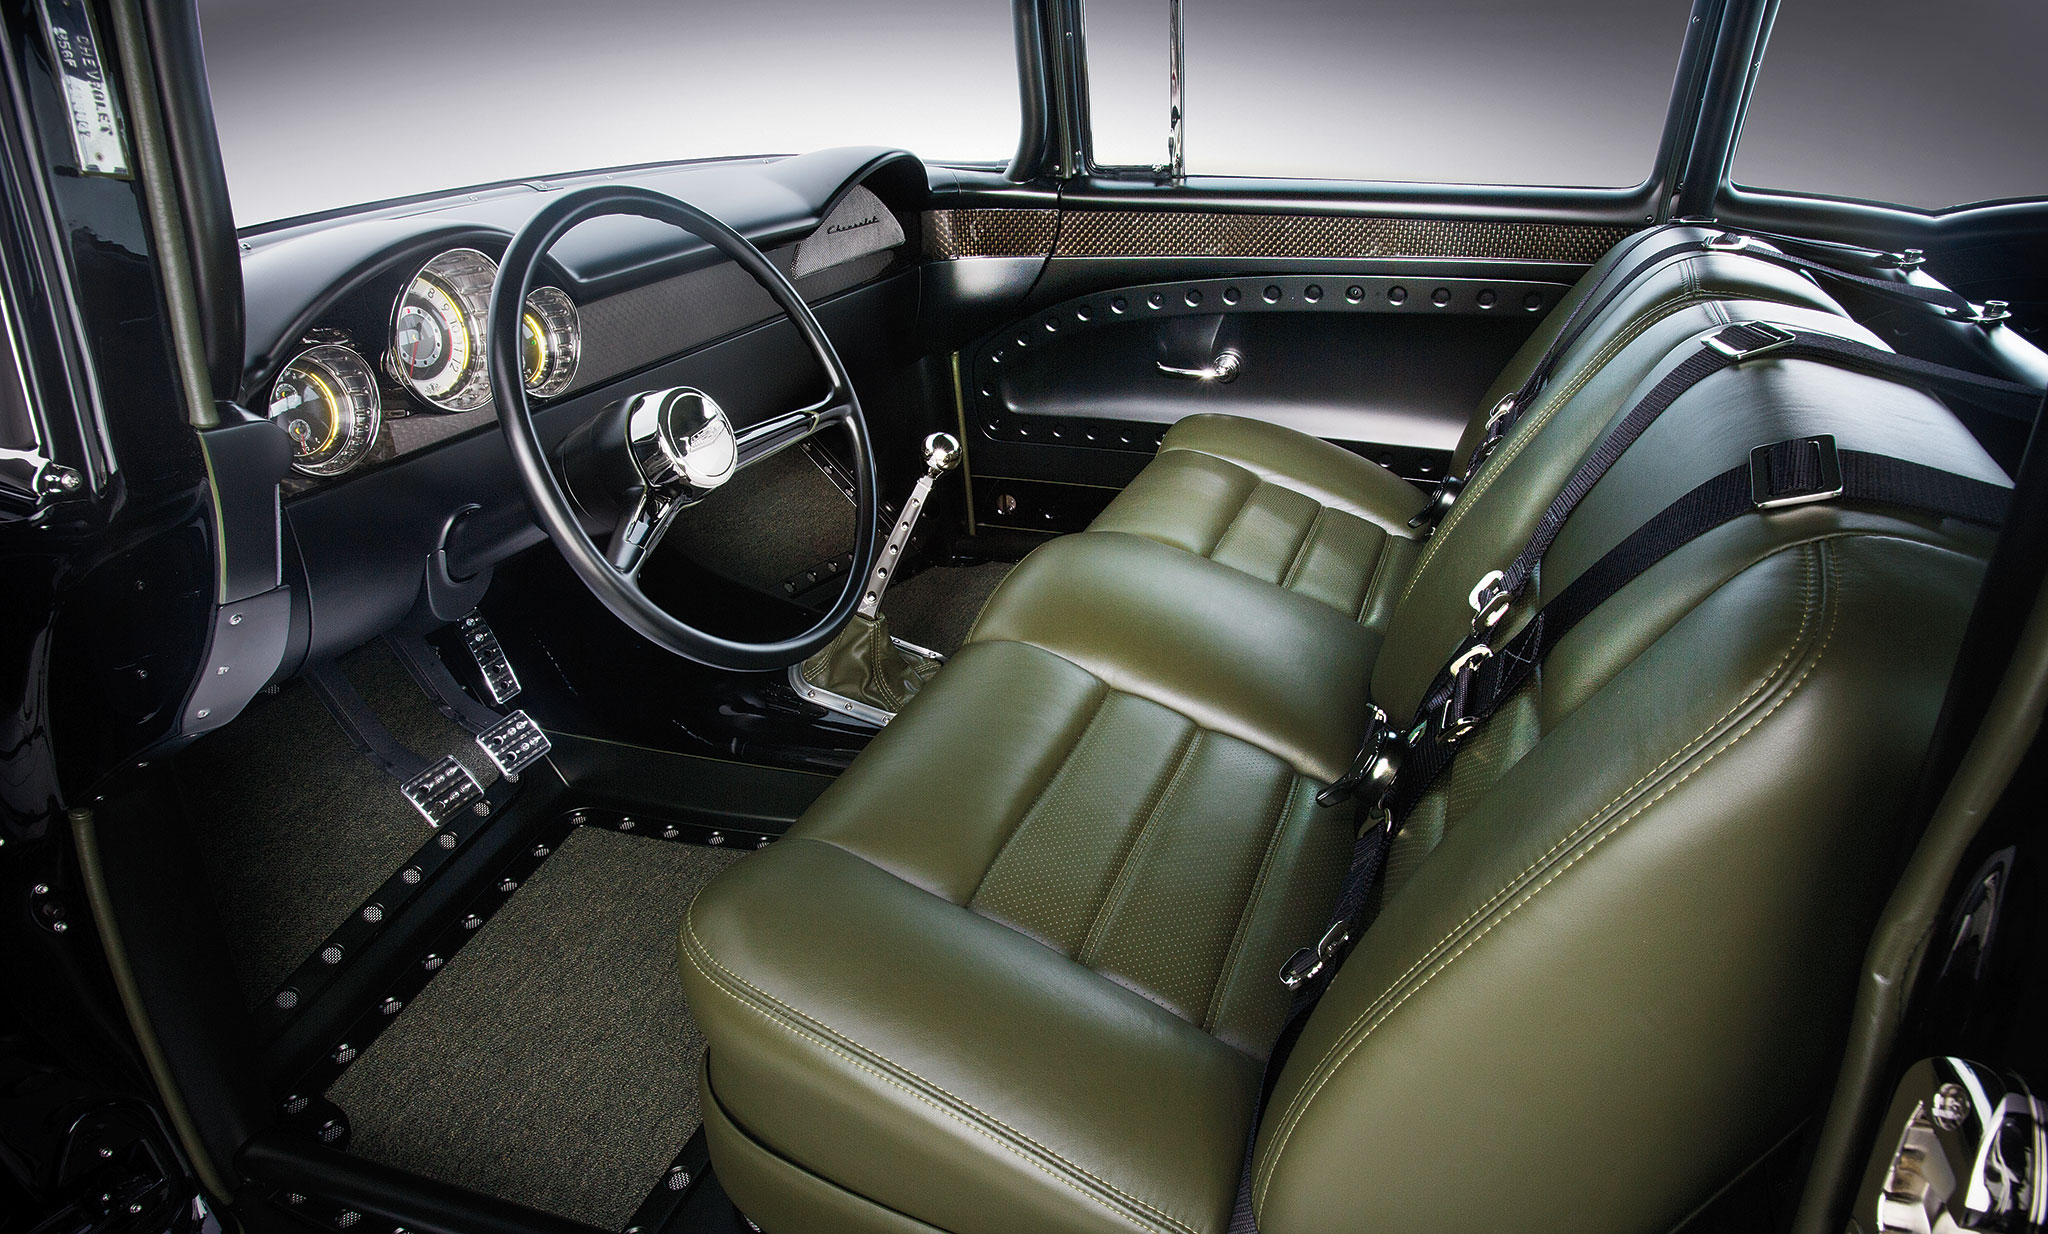 Incredible metalwork can be seen throughout the interior all fabricated at Kemp's. The original '56 bench seat is covered in Tuscan Green leather at Rad Rides by Troy.